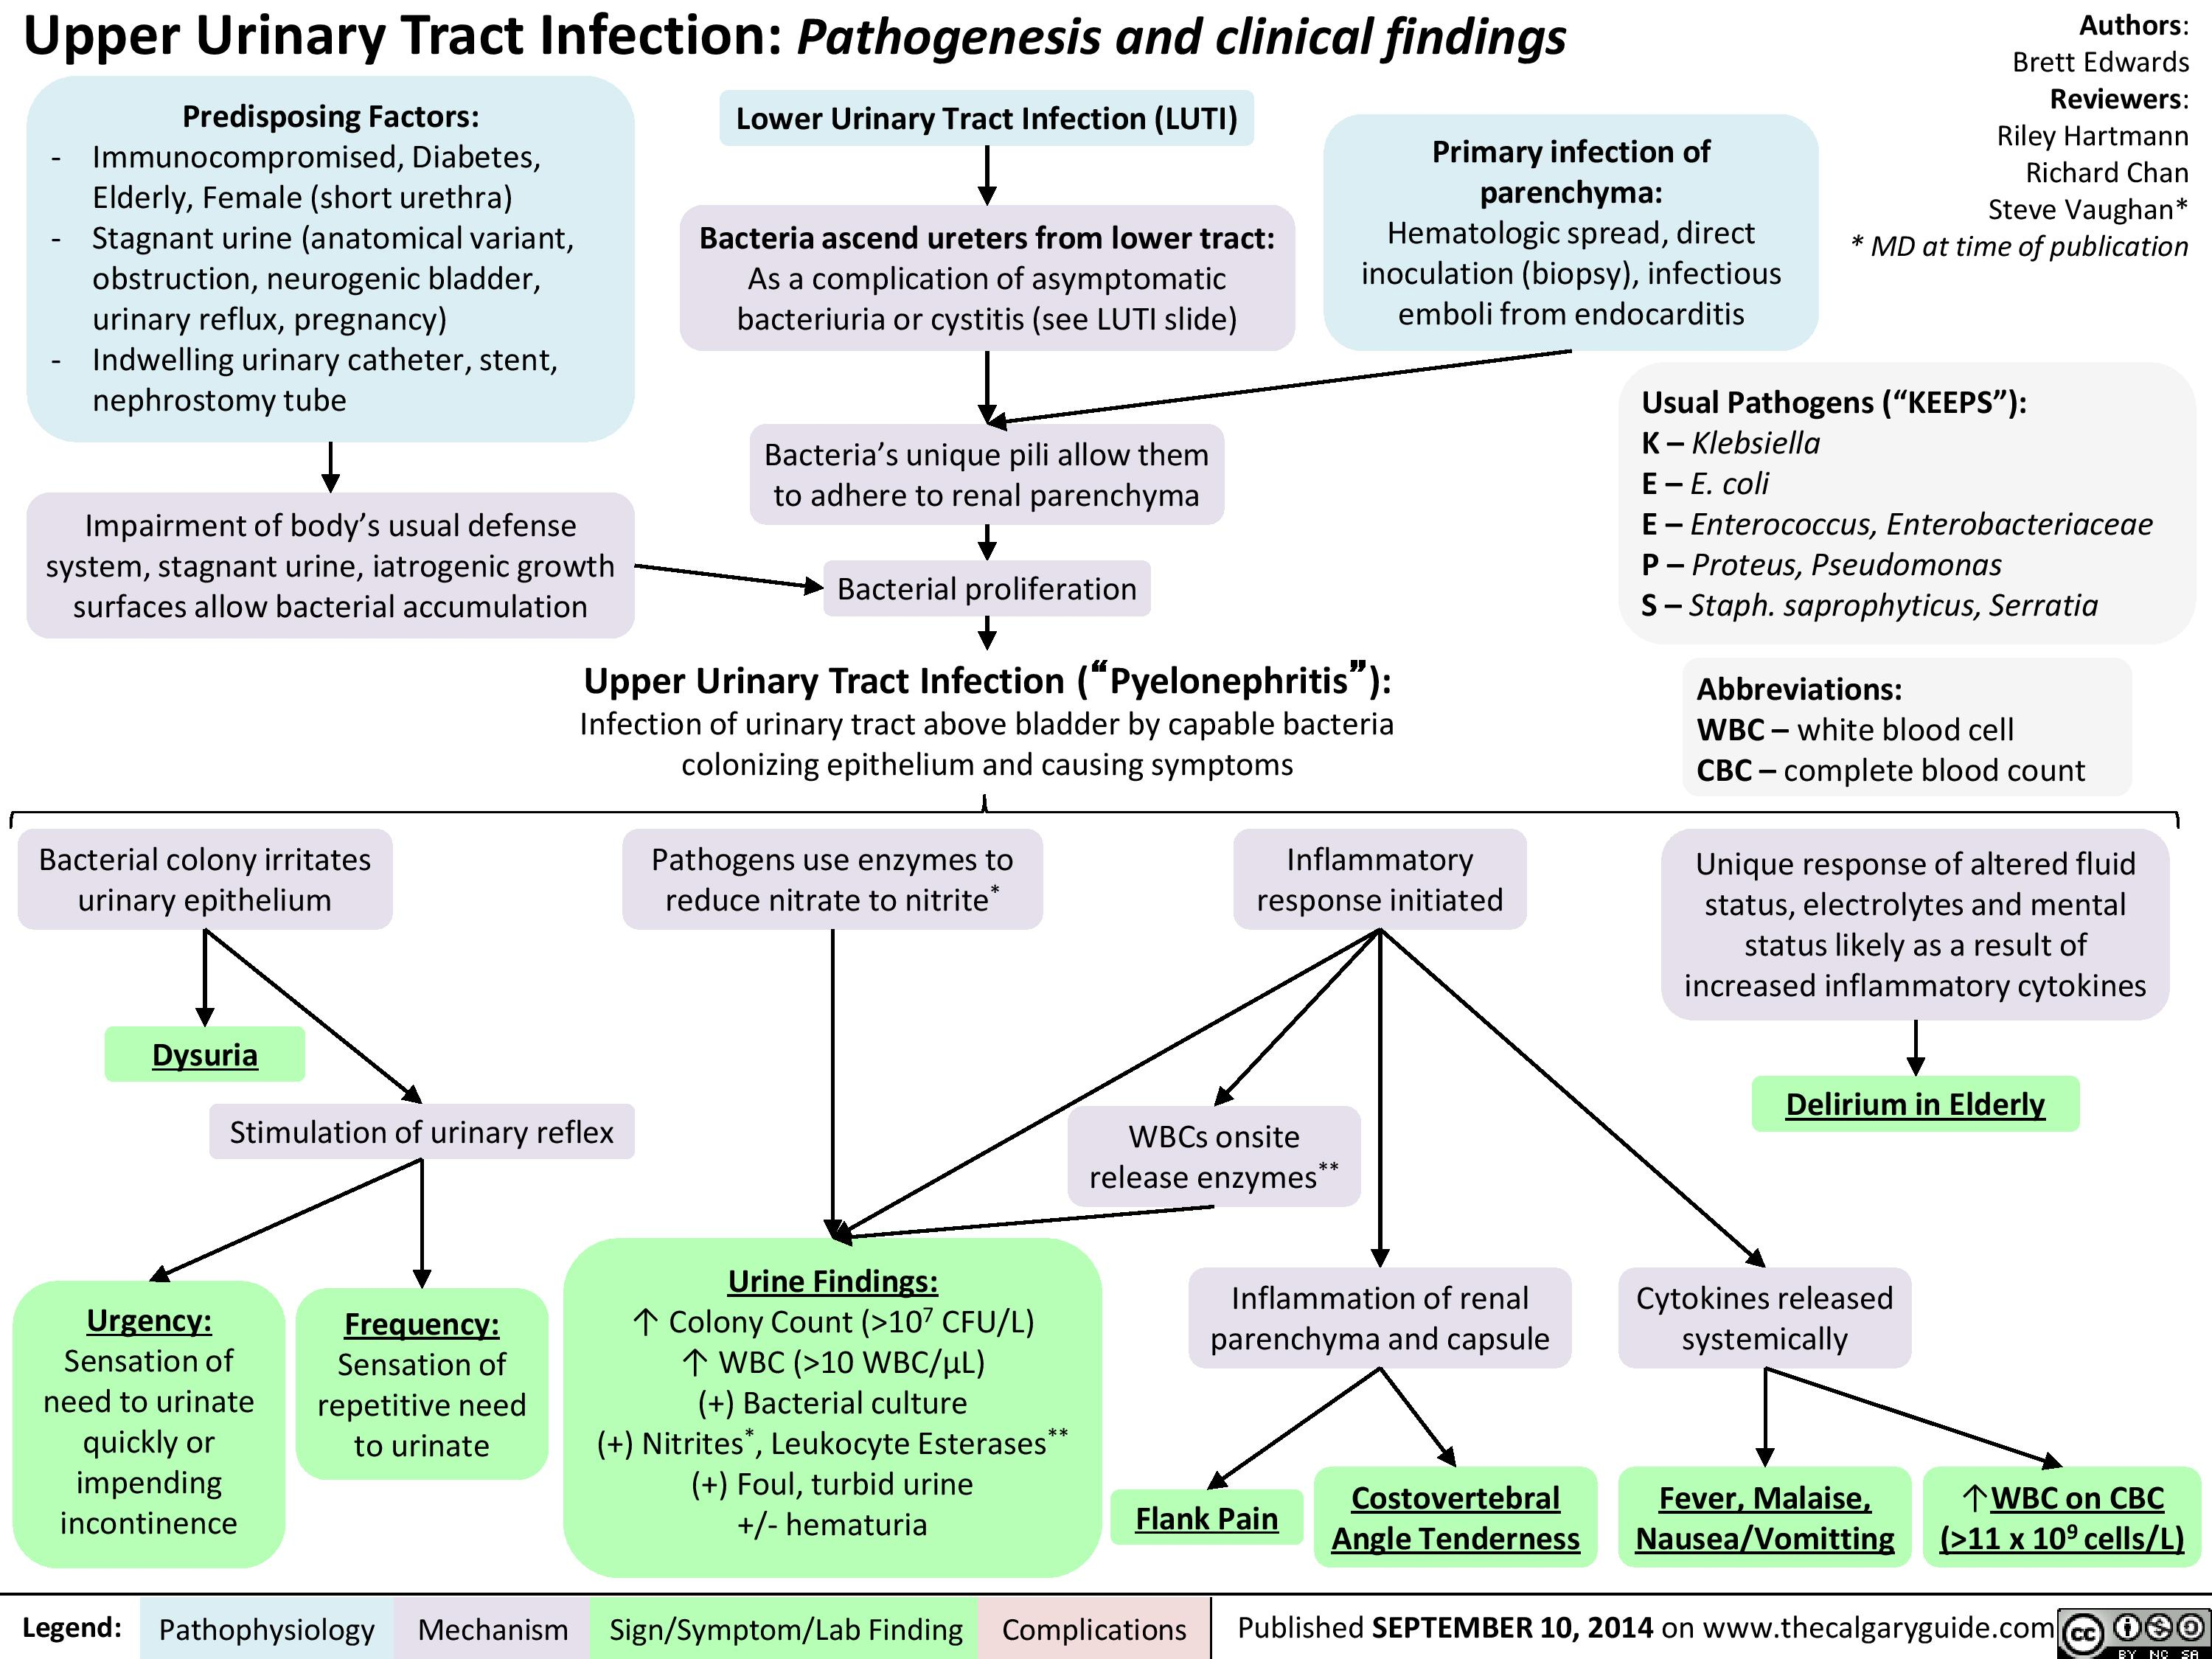 Upper Urinary Tract infection (UUTI): Pathogenesis and Clinical Findings